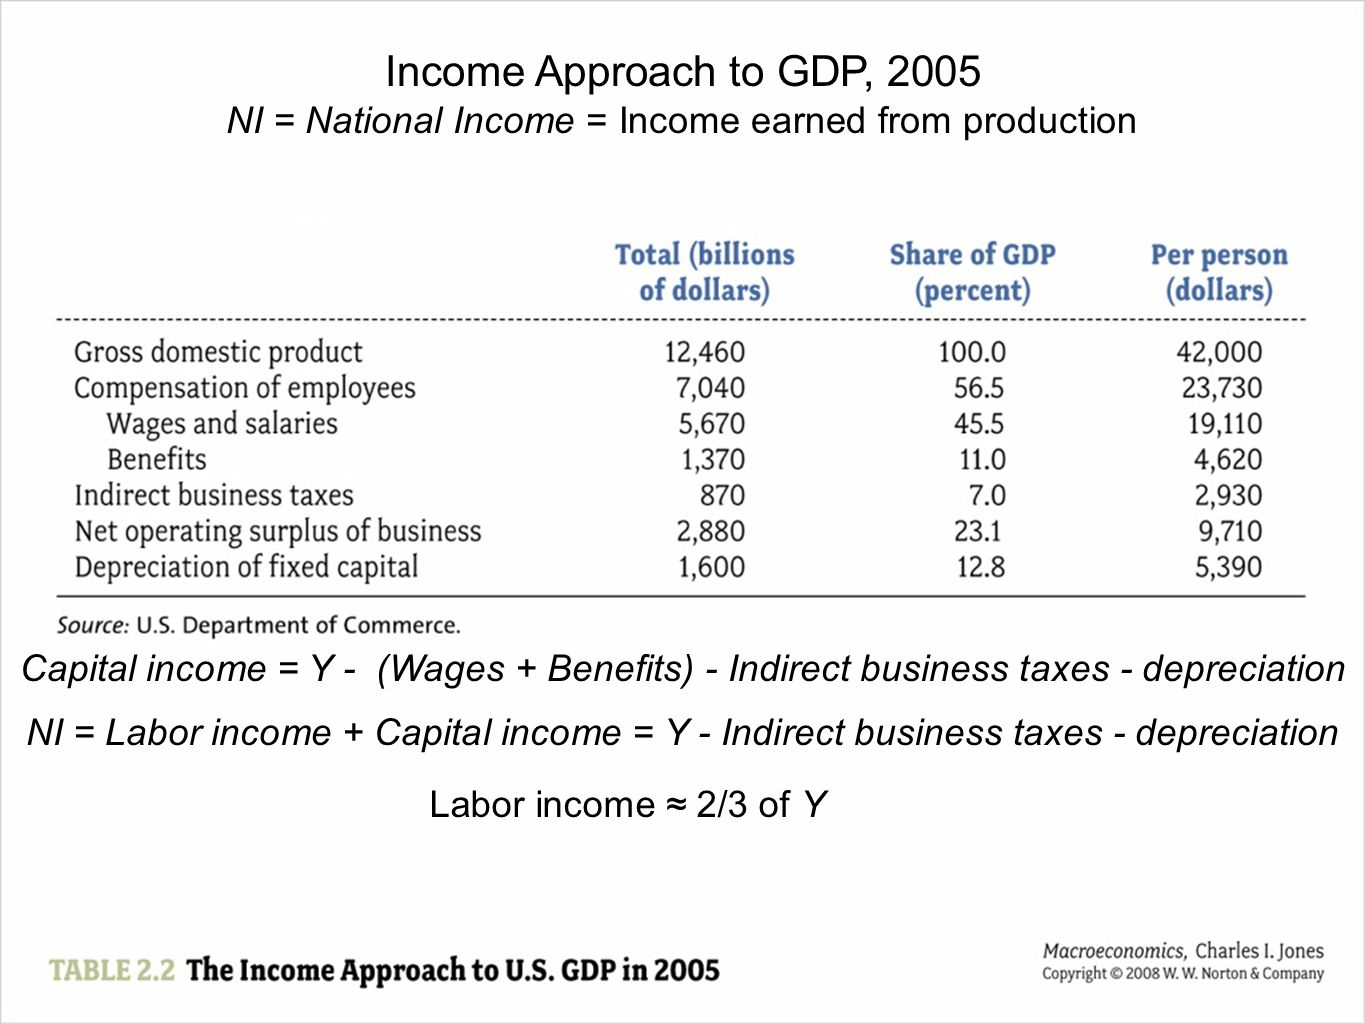 NI = National Income = Income earned from production